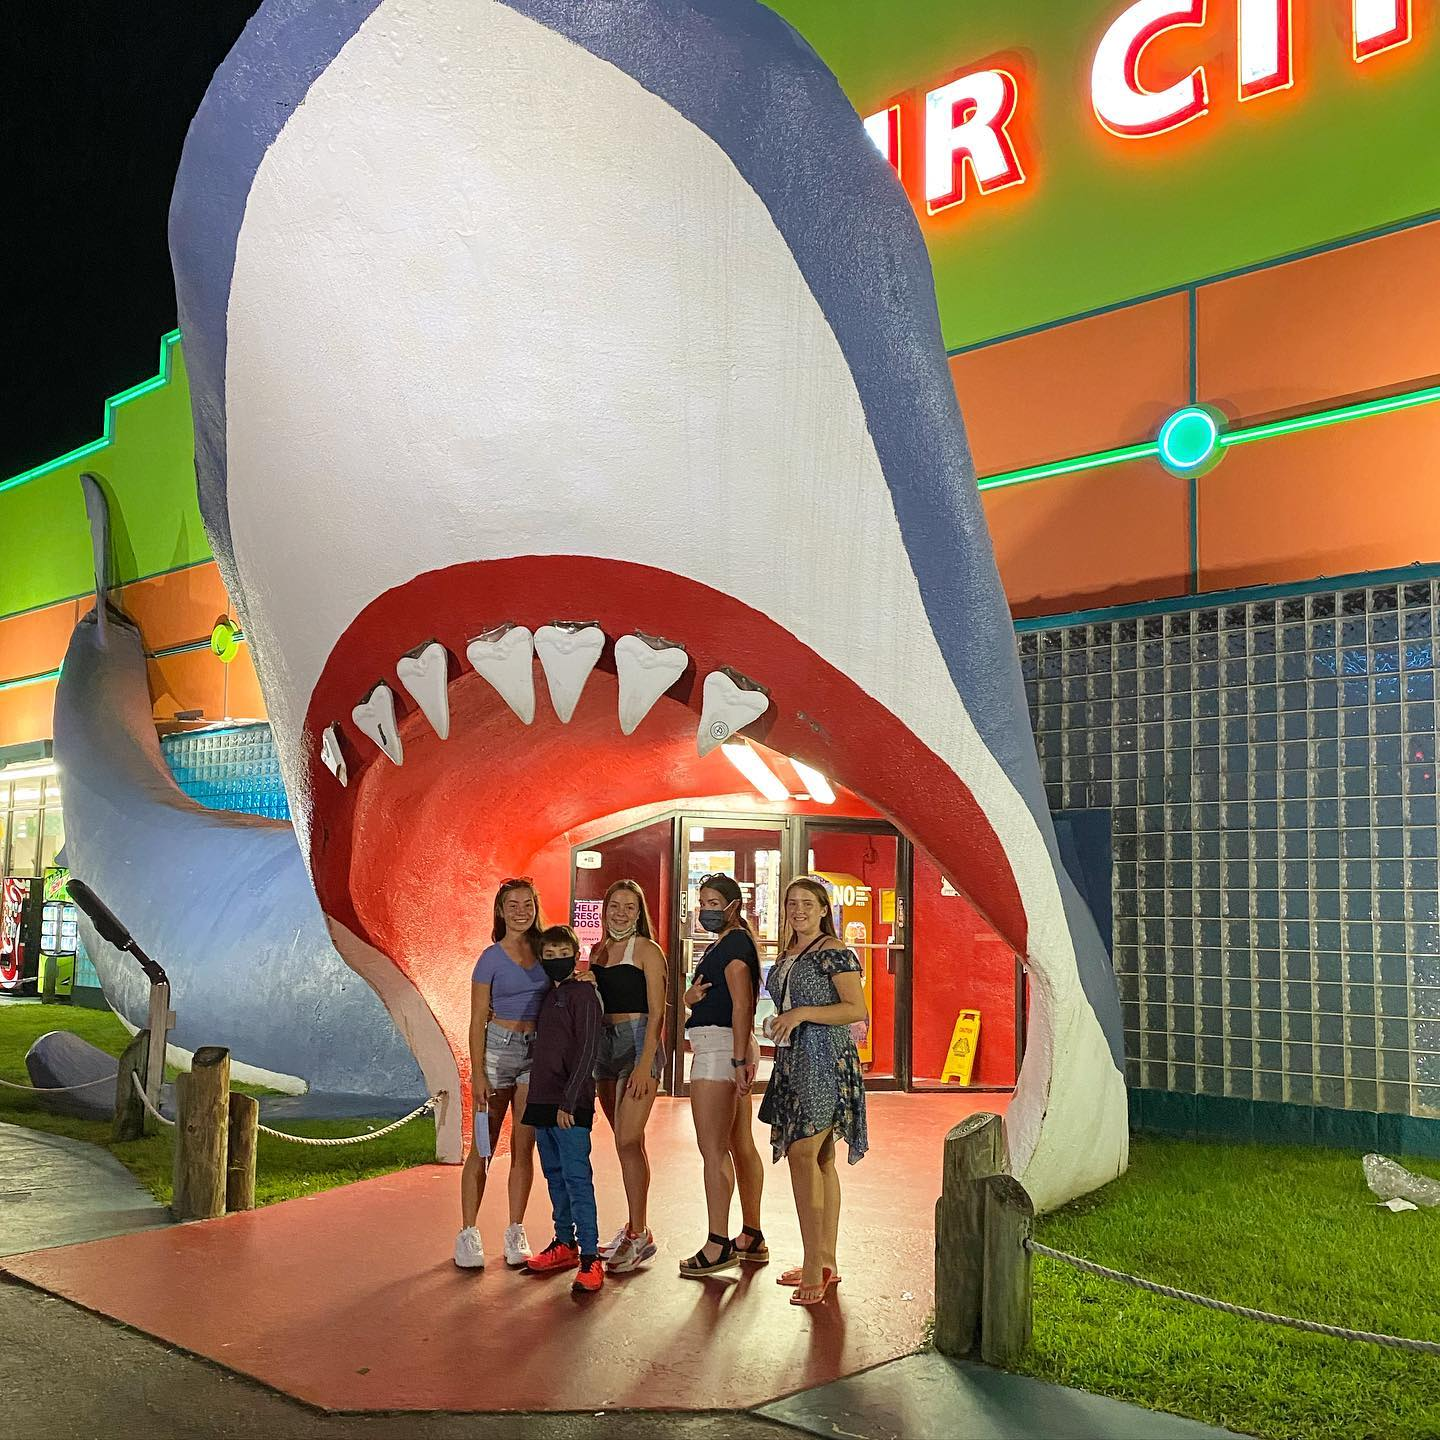 You have to make a stop at Souvenir City with the huge shark head and get a picture in the teeth.  This large icon has been a favorite spot for many years now and there is plenty of good souvenirs to buy. #sharkhead #teethofsharks #souvenirshops #beachicon